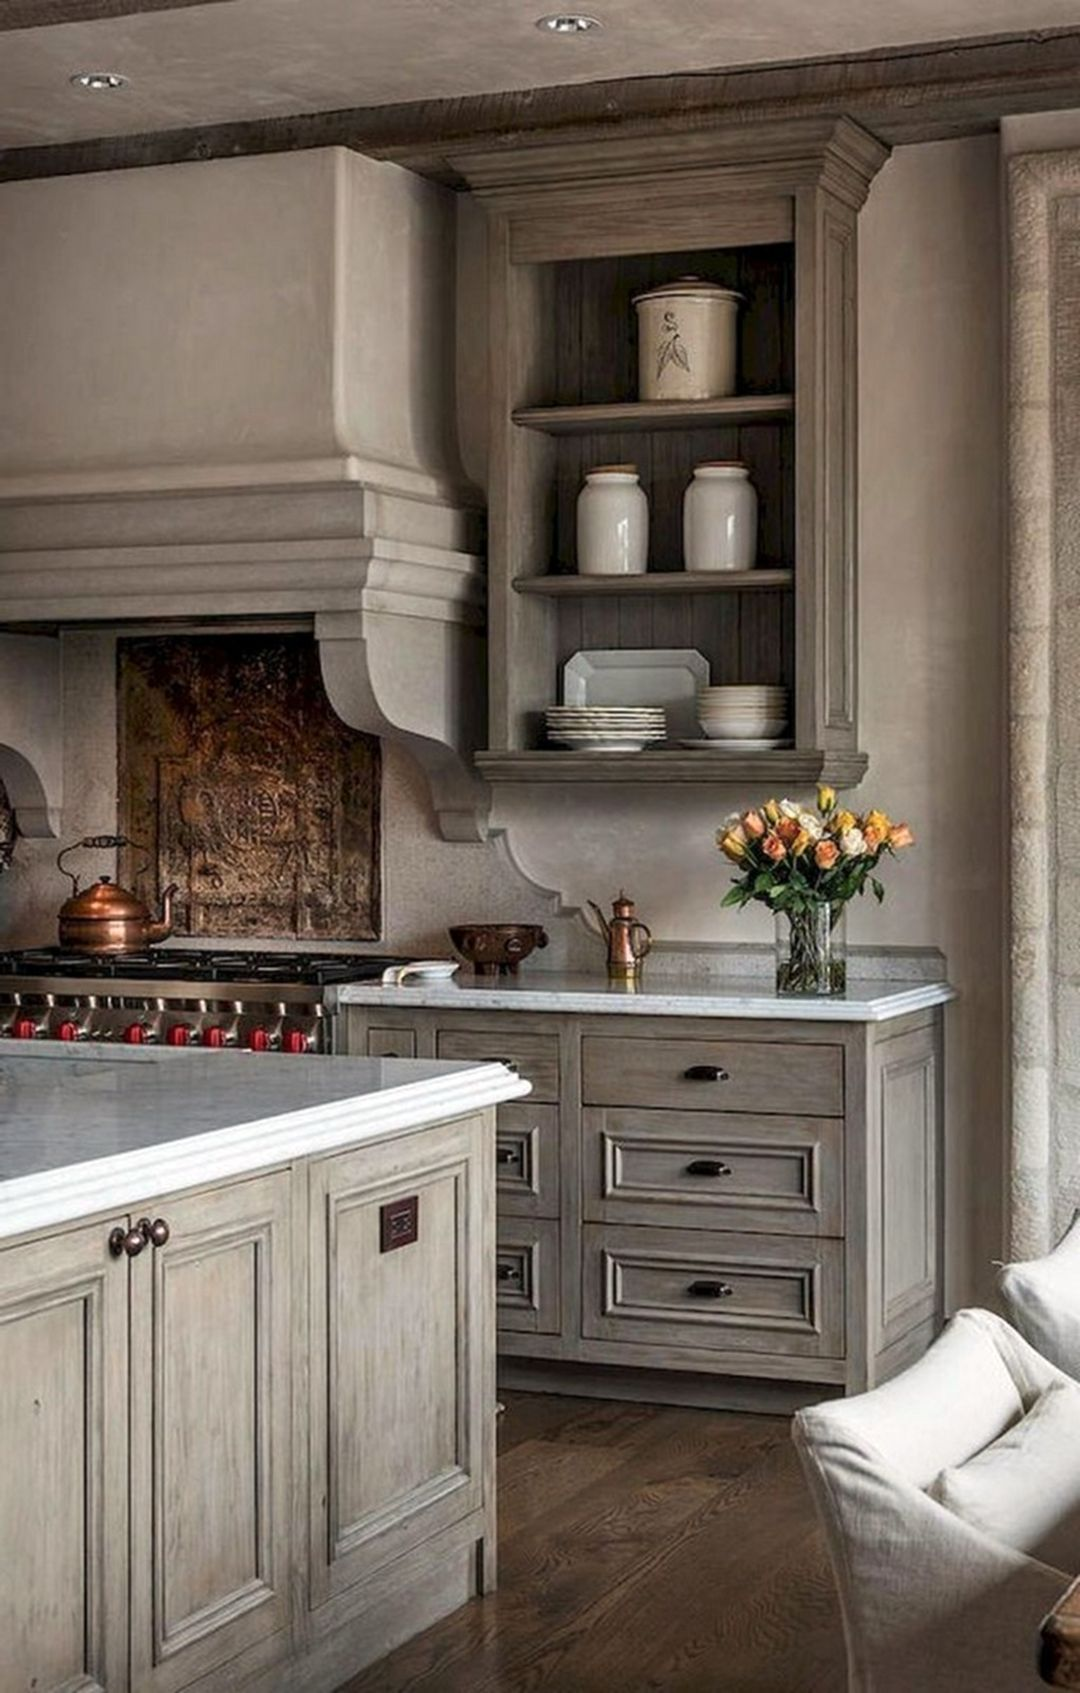 11 Elegant Modern Rustic Farmhouse Kitchen Cabinets Ideas In 2020 Country Style Kitchen Modern Farmhouse Kitchens Rustic Farmhouse Kitchen